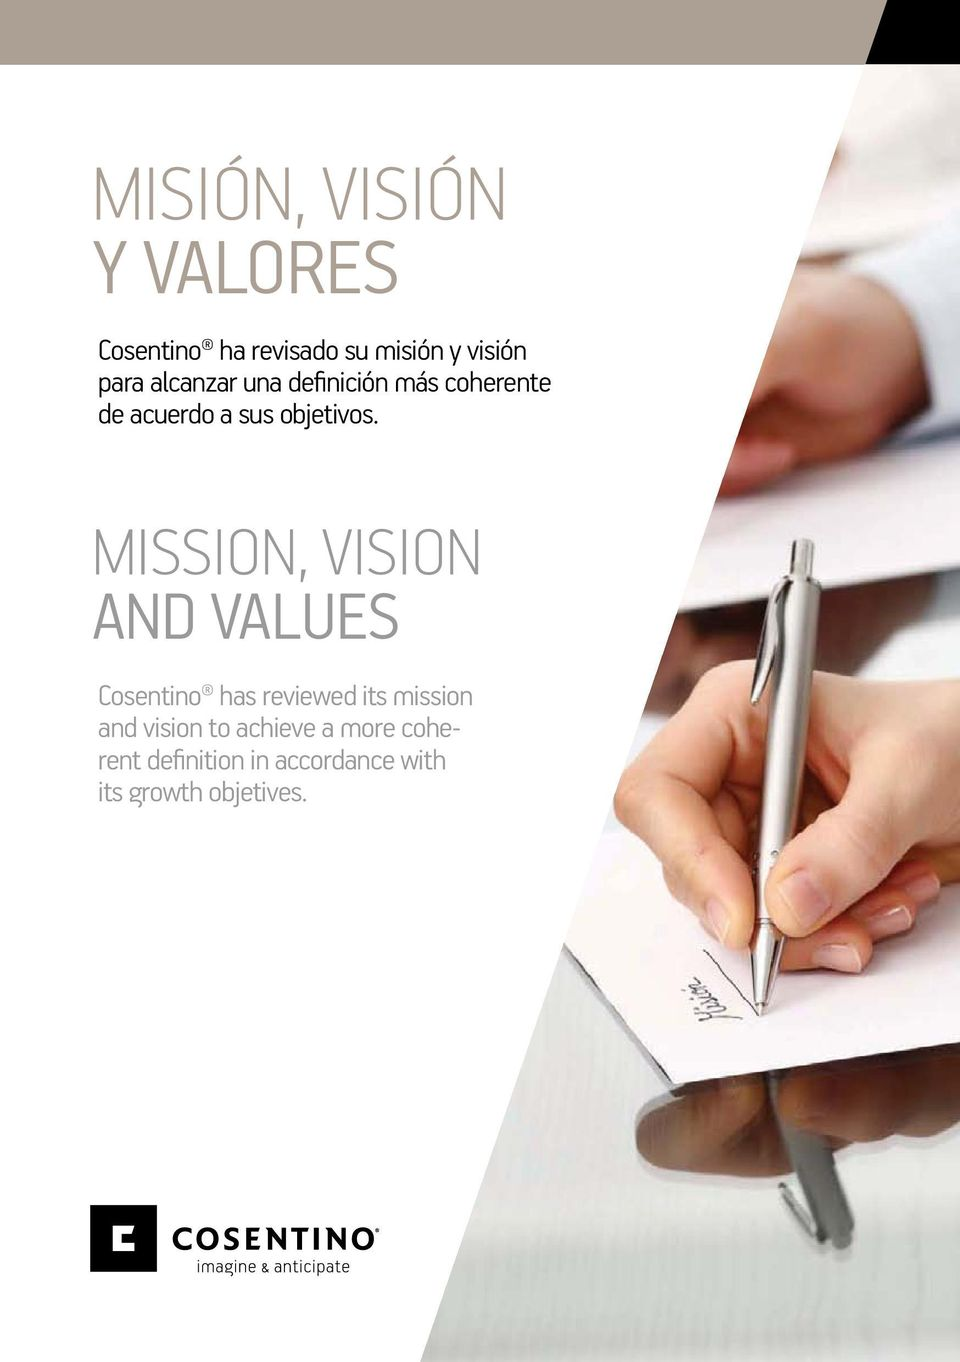 MiSSiOn, VisiOn AND ValUEs Cosentino has reviewed its mission and